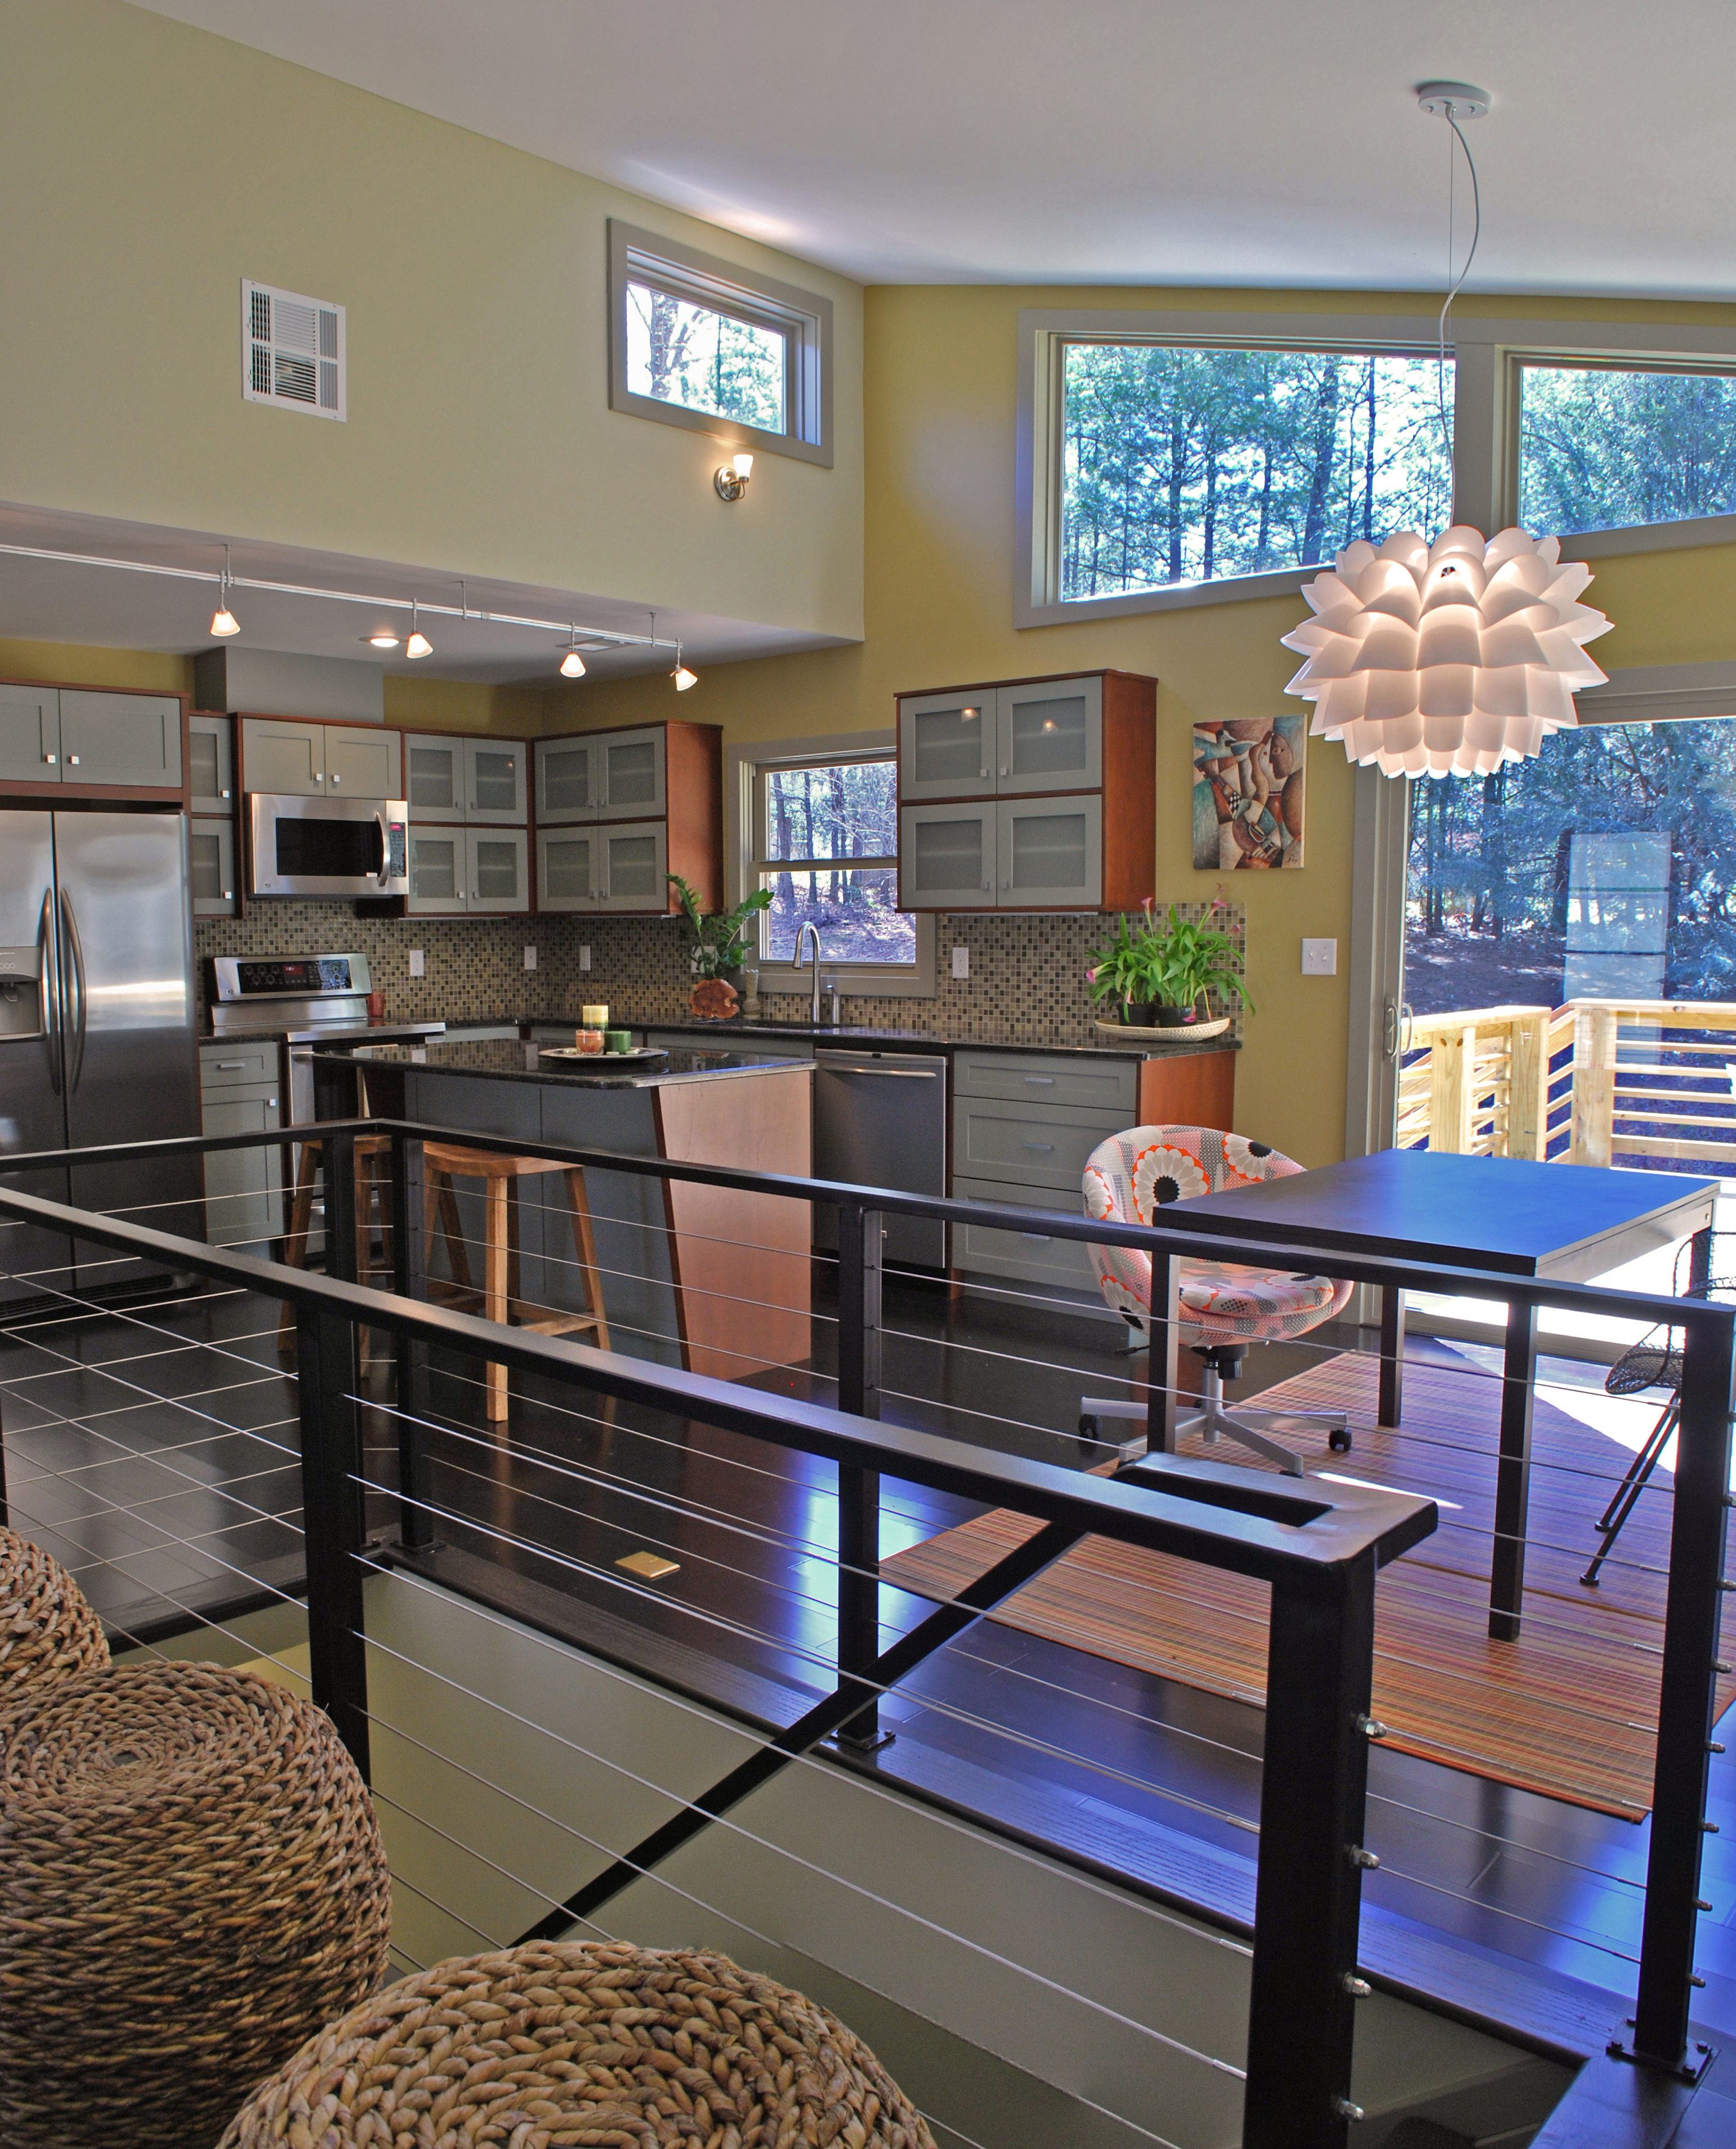 MAKE YOUR MODERN | Recycling a Ranch Home Bellwhether Style ... Modern Ranch House Designs Houzz on vintage modern houses, modern contemporary houses, green modern houses, art modern houses, architecture modern houses, hgtv modern houses, beach modern houses, google modern houses, blue modern houses, black modern houses, architizer modern houses, real simple modern houses, traditional modern houses, color modern houses, pink modern houses, modern modern houses, design modern houses,